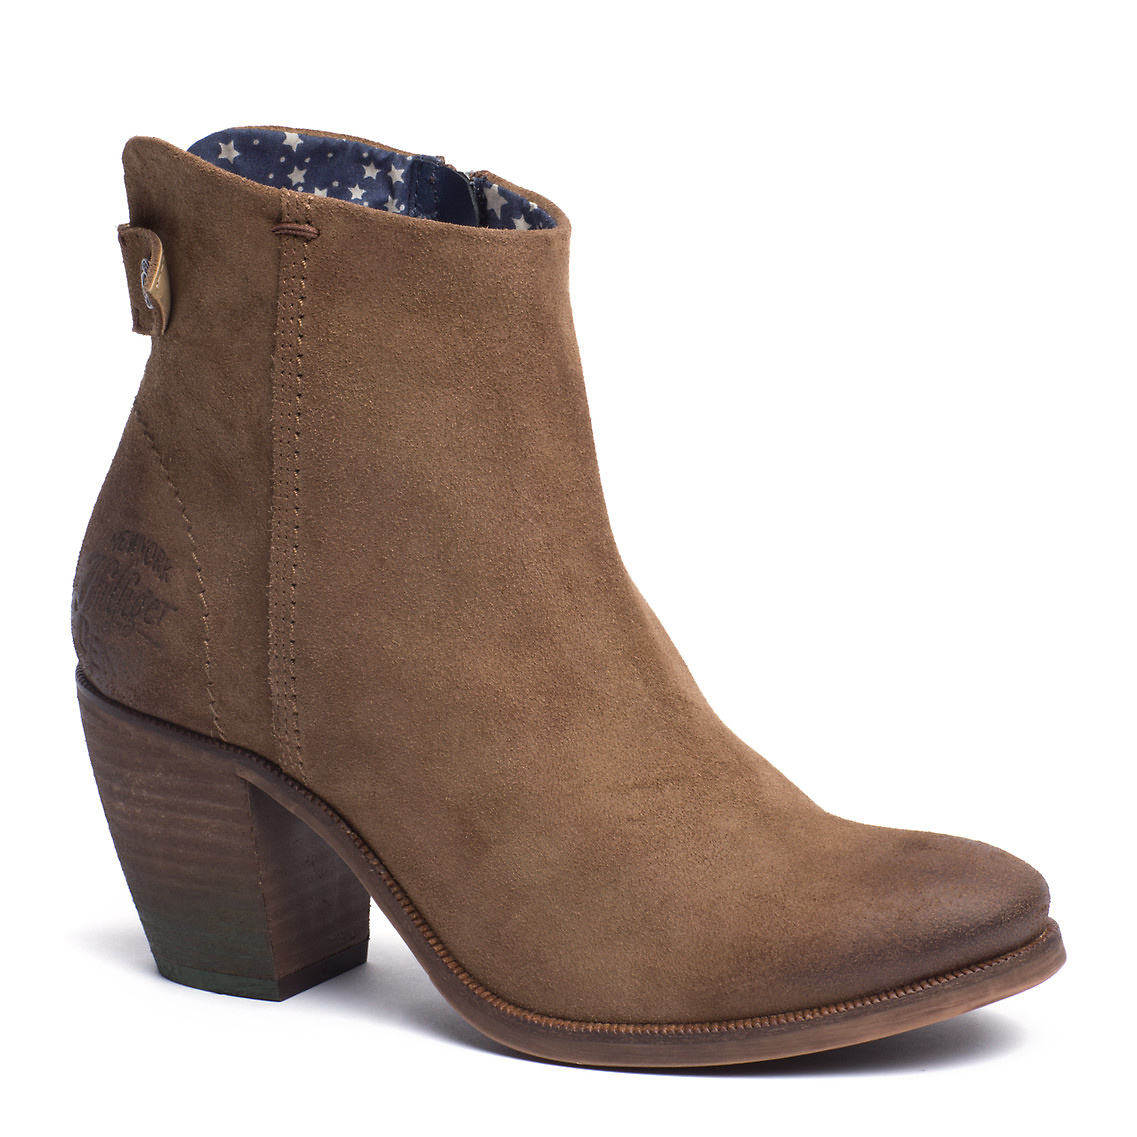 tommy hilfiger ivy ankle boots in brown dark sand lyst. Black Bedroom Furniture Sets. Home Design Ideas